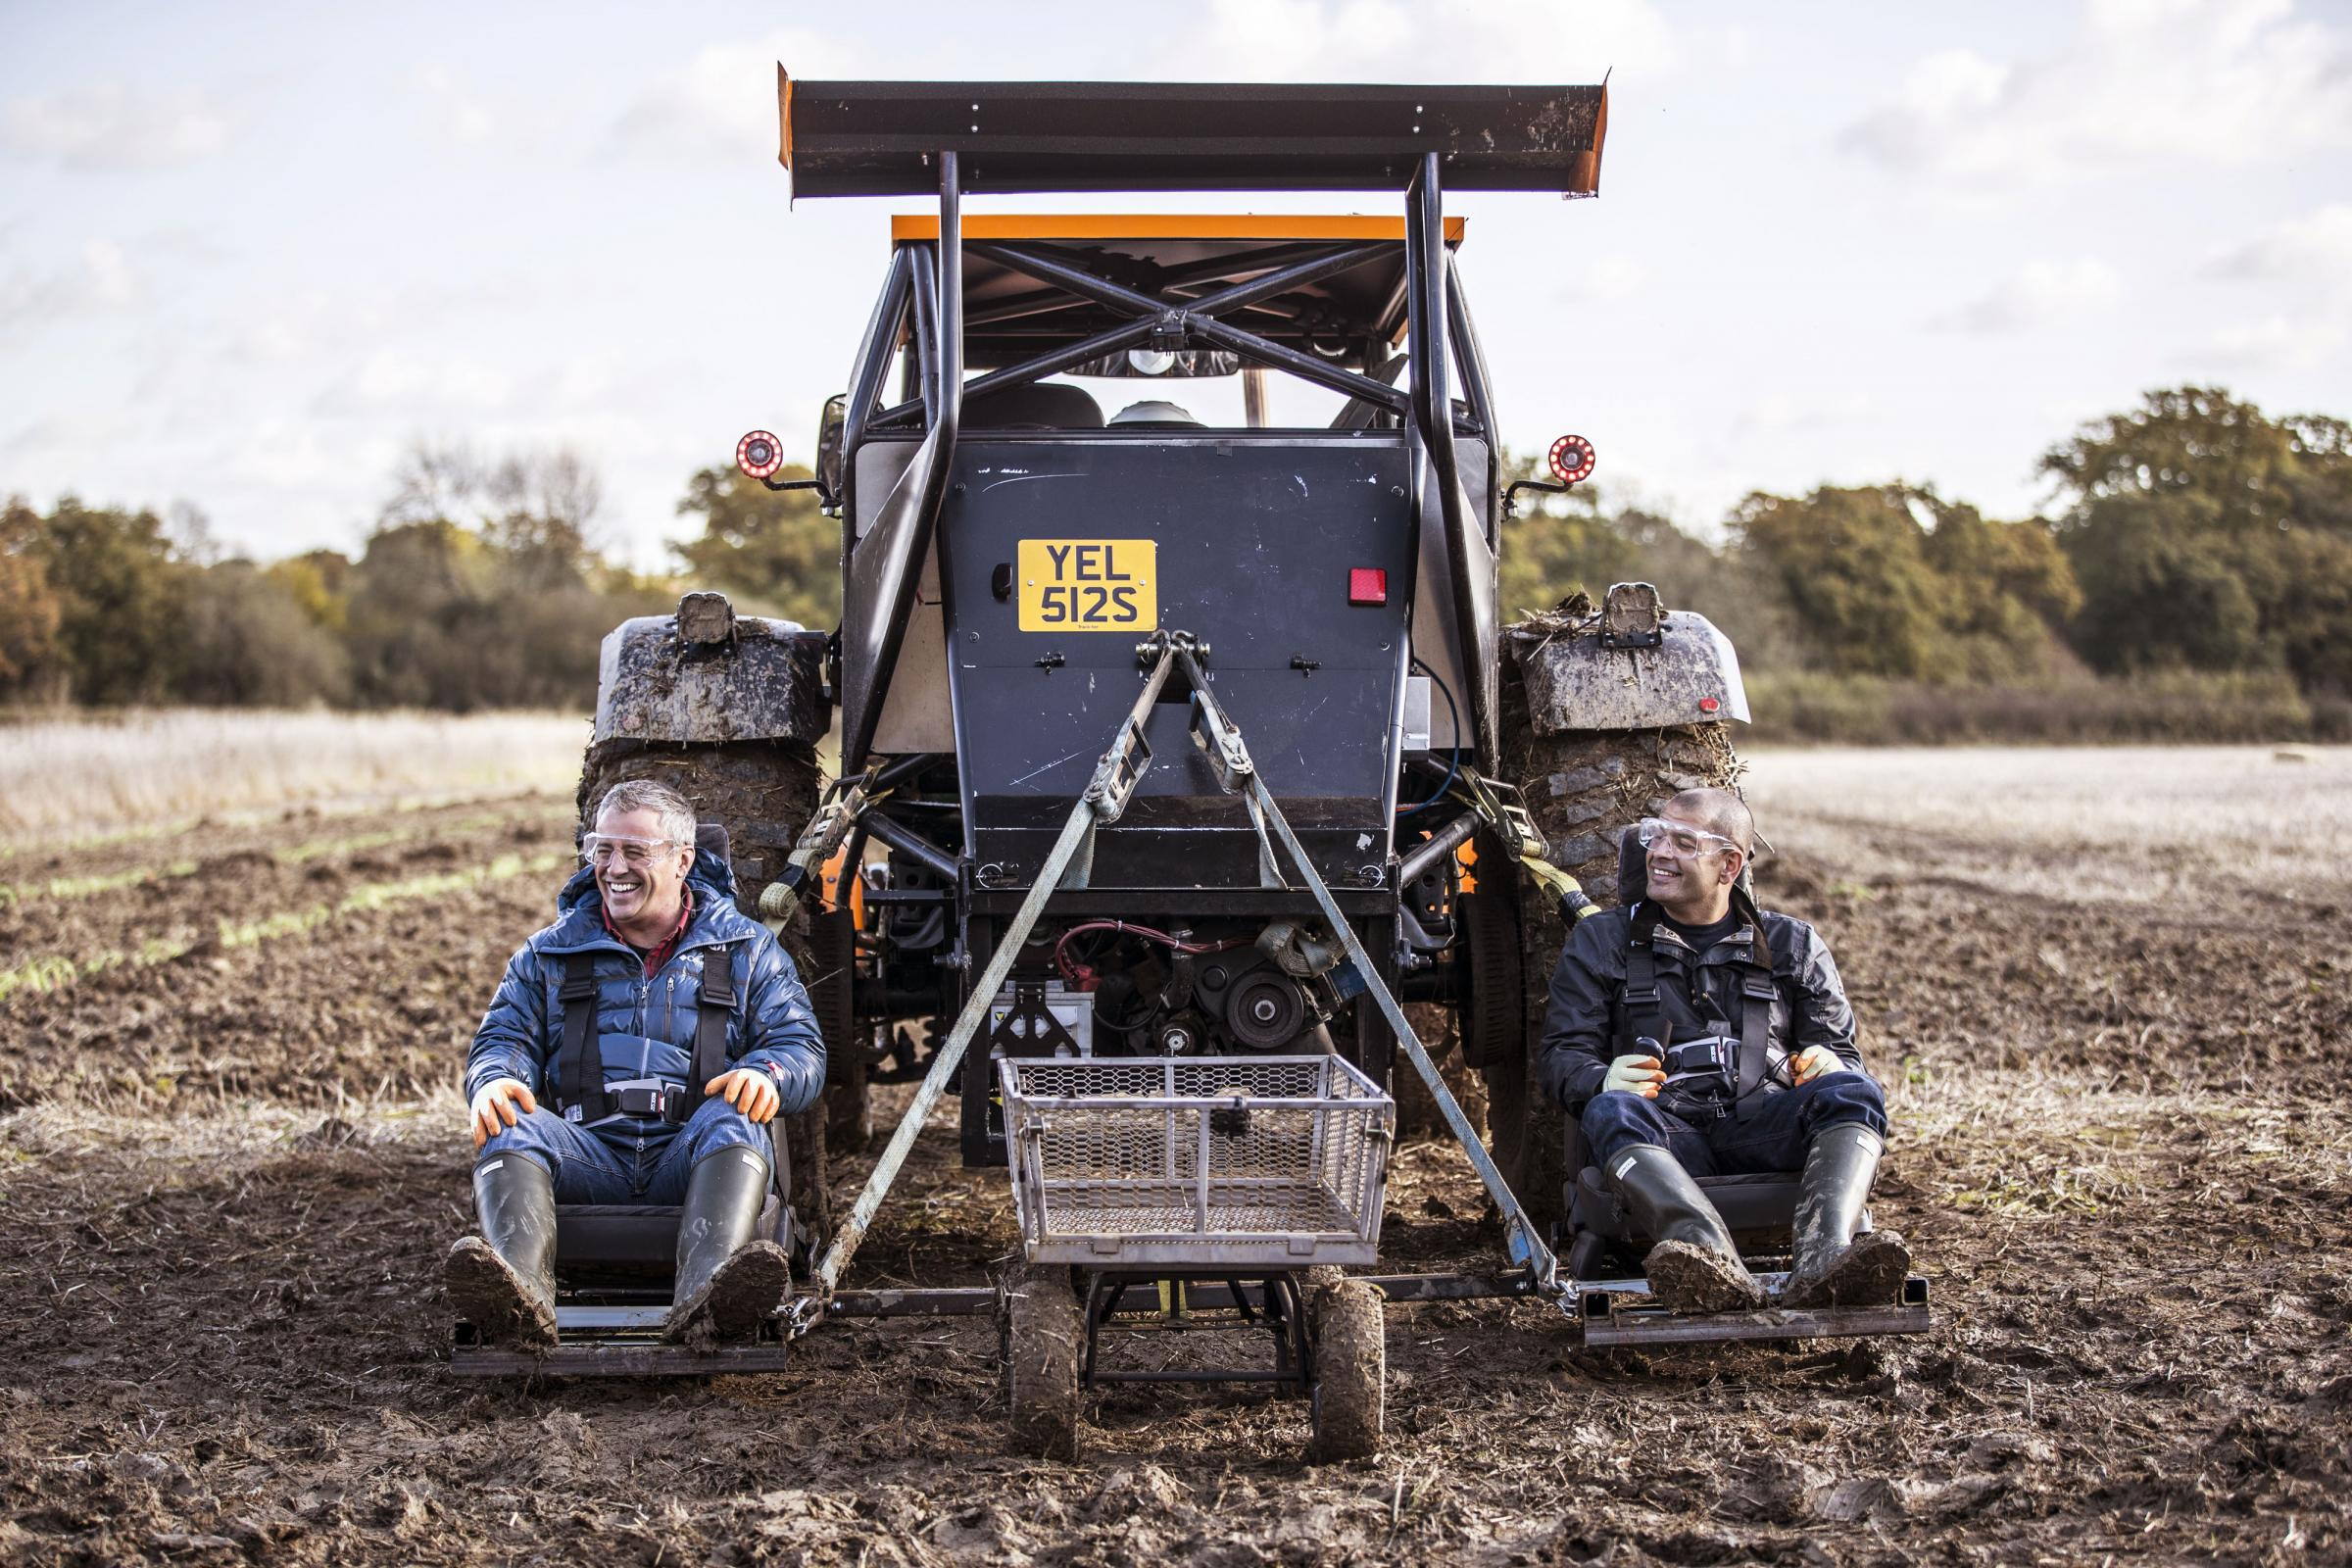 World's fastest tractor created by Top Gear